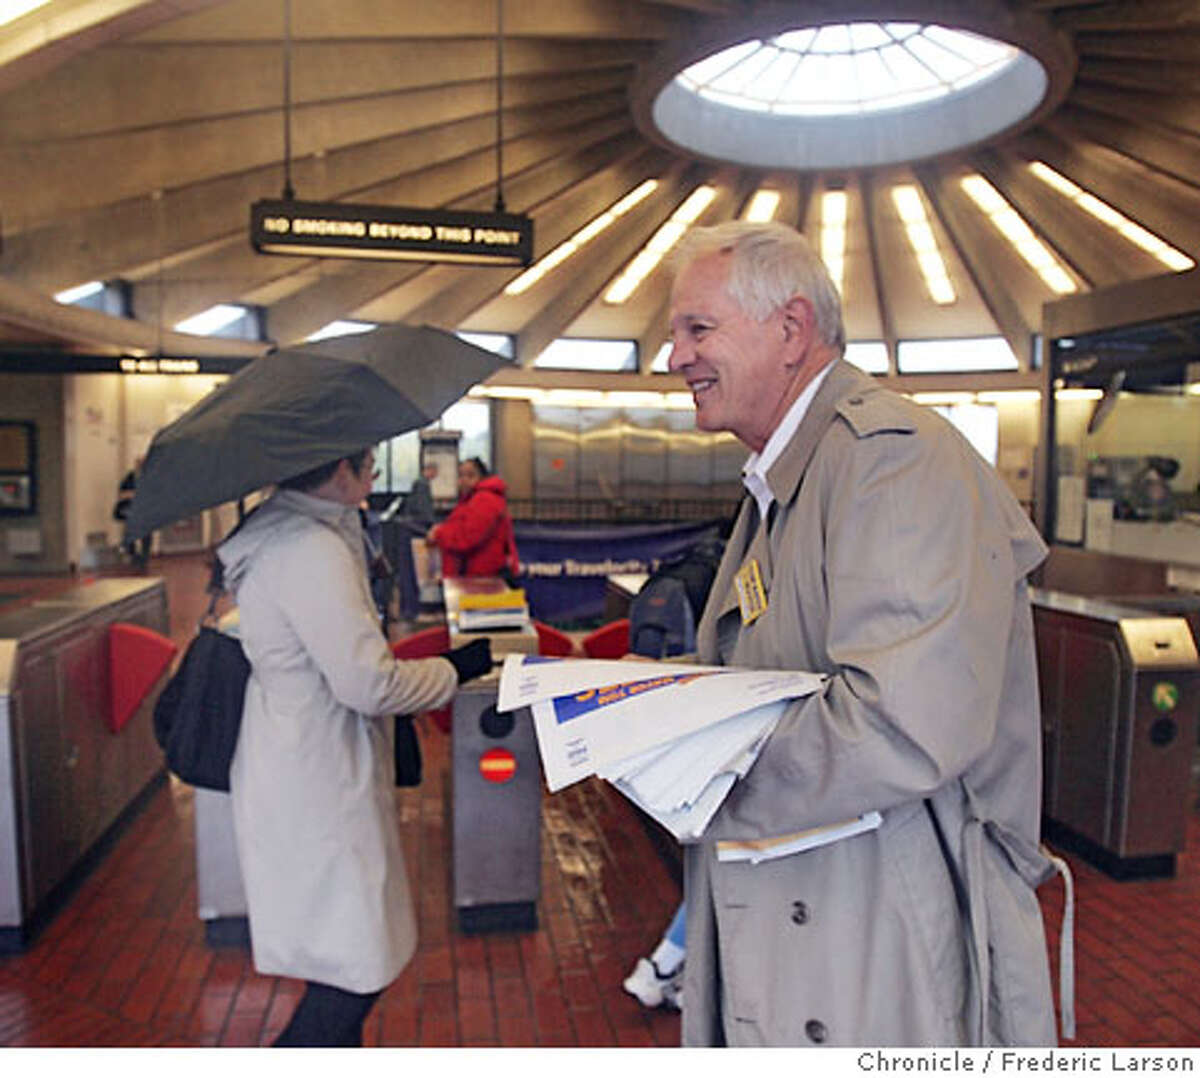 Berkeley Mayor Tom Bates greets commuters at the North Berkeley BART station to hope of being re-electioned. 11/2/06 {Photographed by Frederic Larson} Ran on: 11-08-2006 Mayor Tom Bates greets commuters at the BARTs North Berkeley Station in some last-minute campaigning. Early returns show Bates defeating ex-Planning Commissioner Zelda Bronstein in the race. Ran on: 11-08-2006